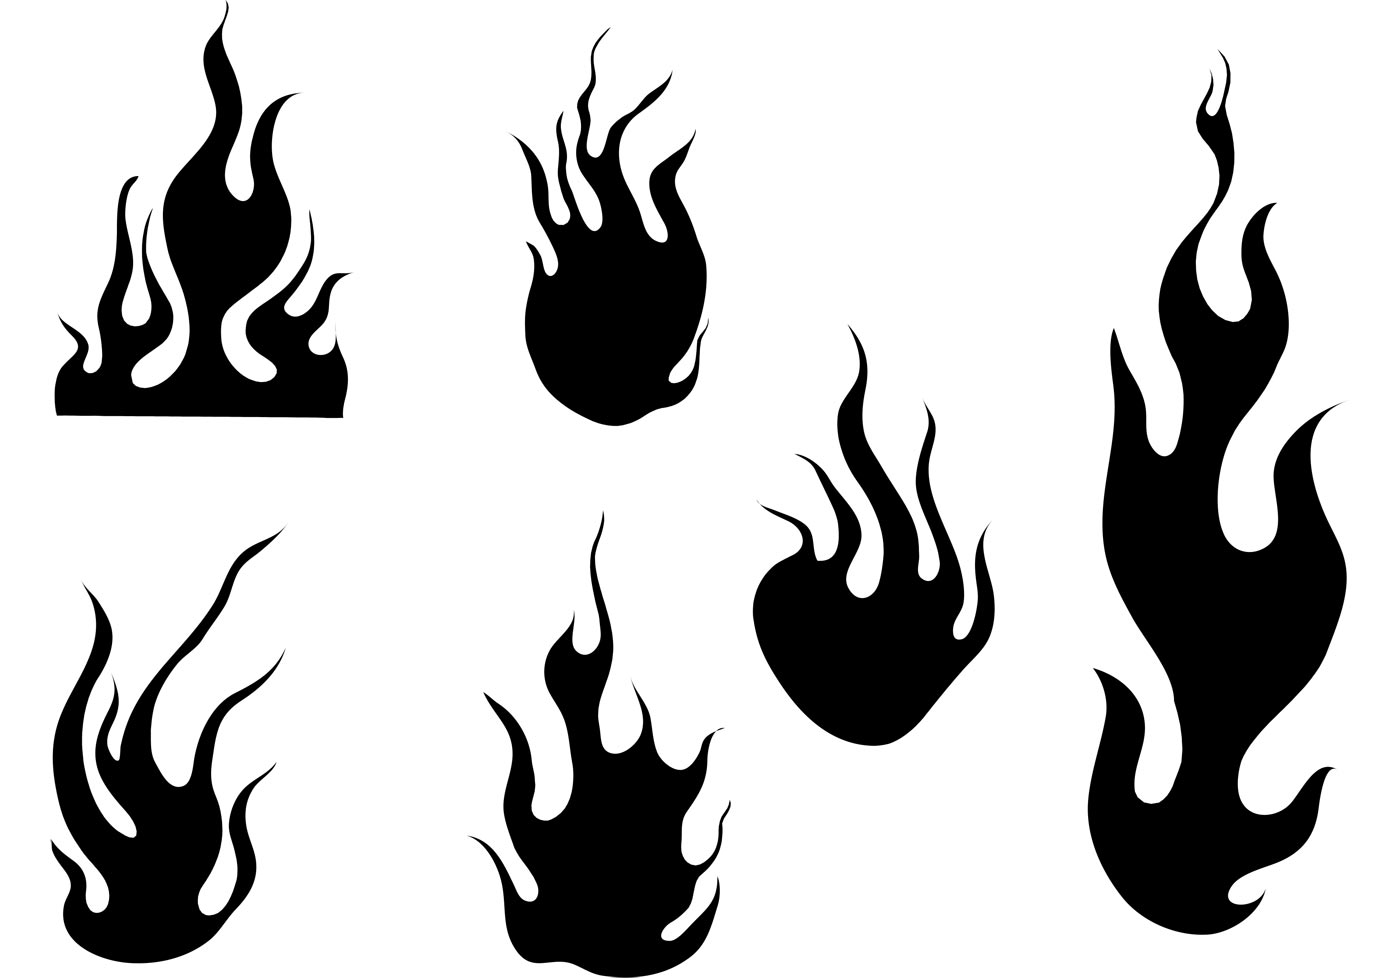 Flame clipart silhouette. Fire at getdrawings com